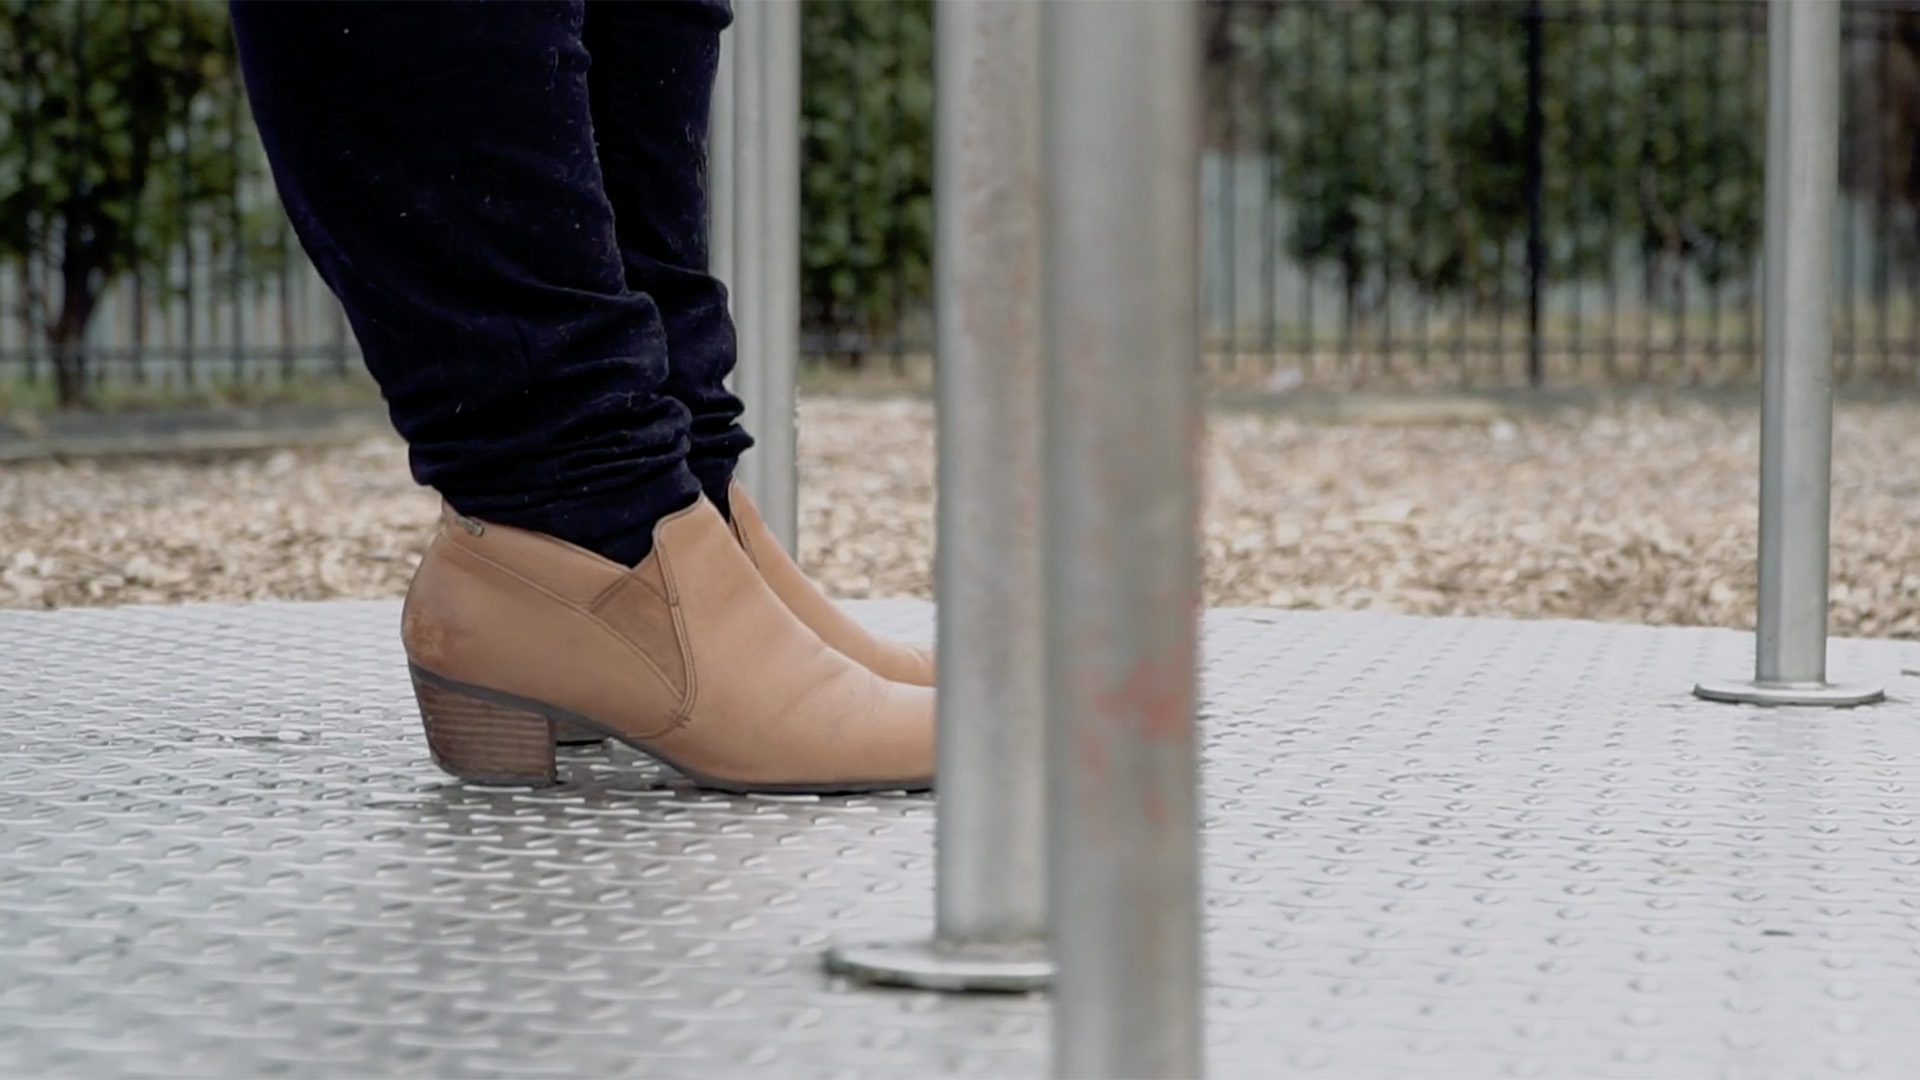 A close up on the shoes of a participant in the Women's Aid project, they are resting on a playground roundabout